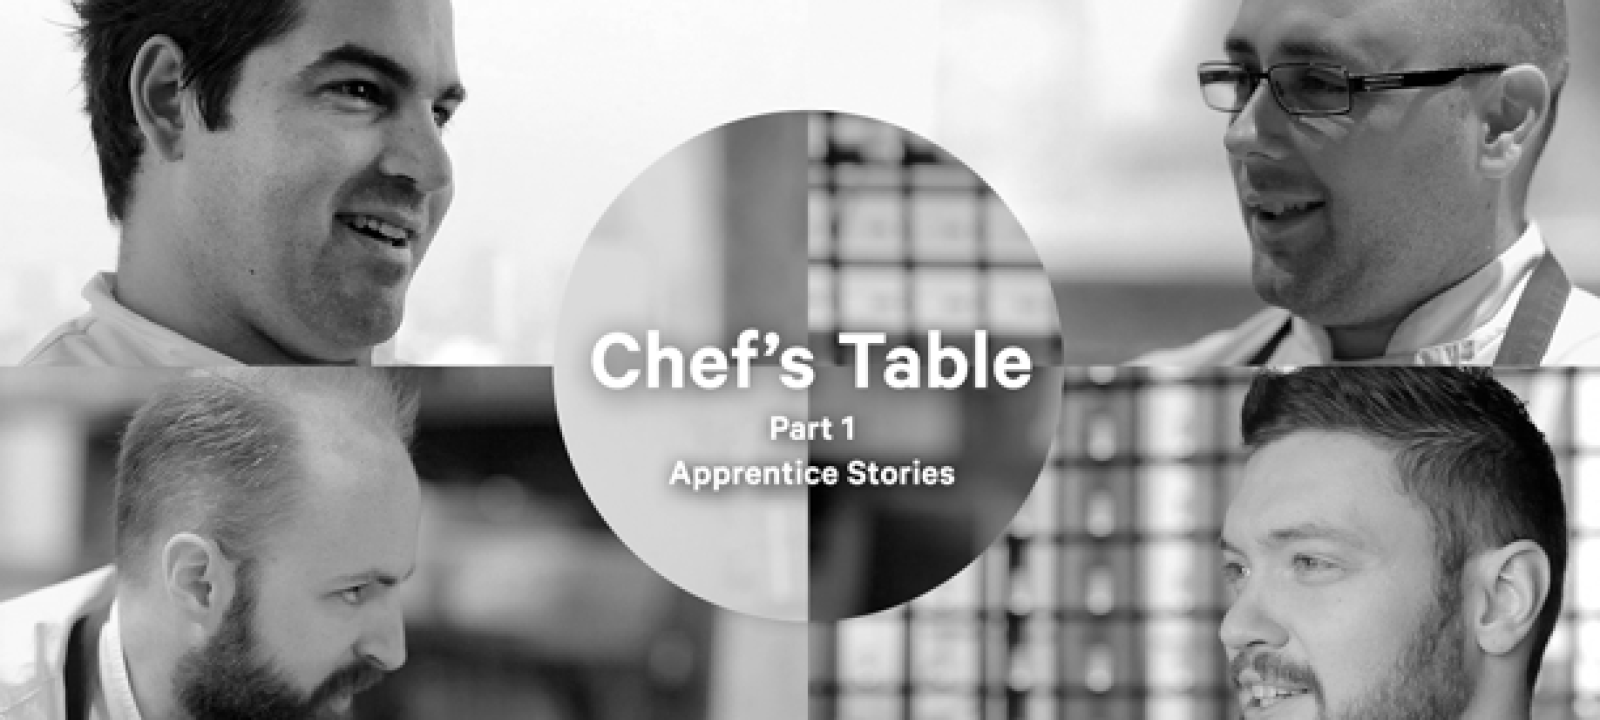 Chef's Table, Part 1